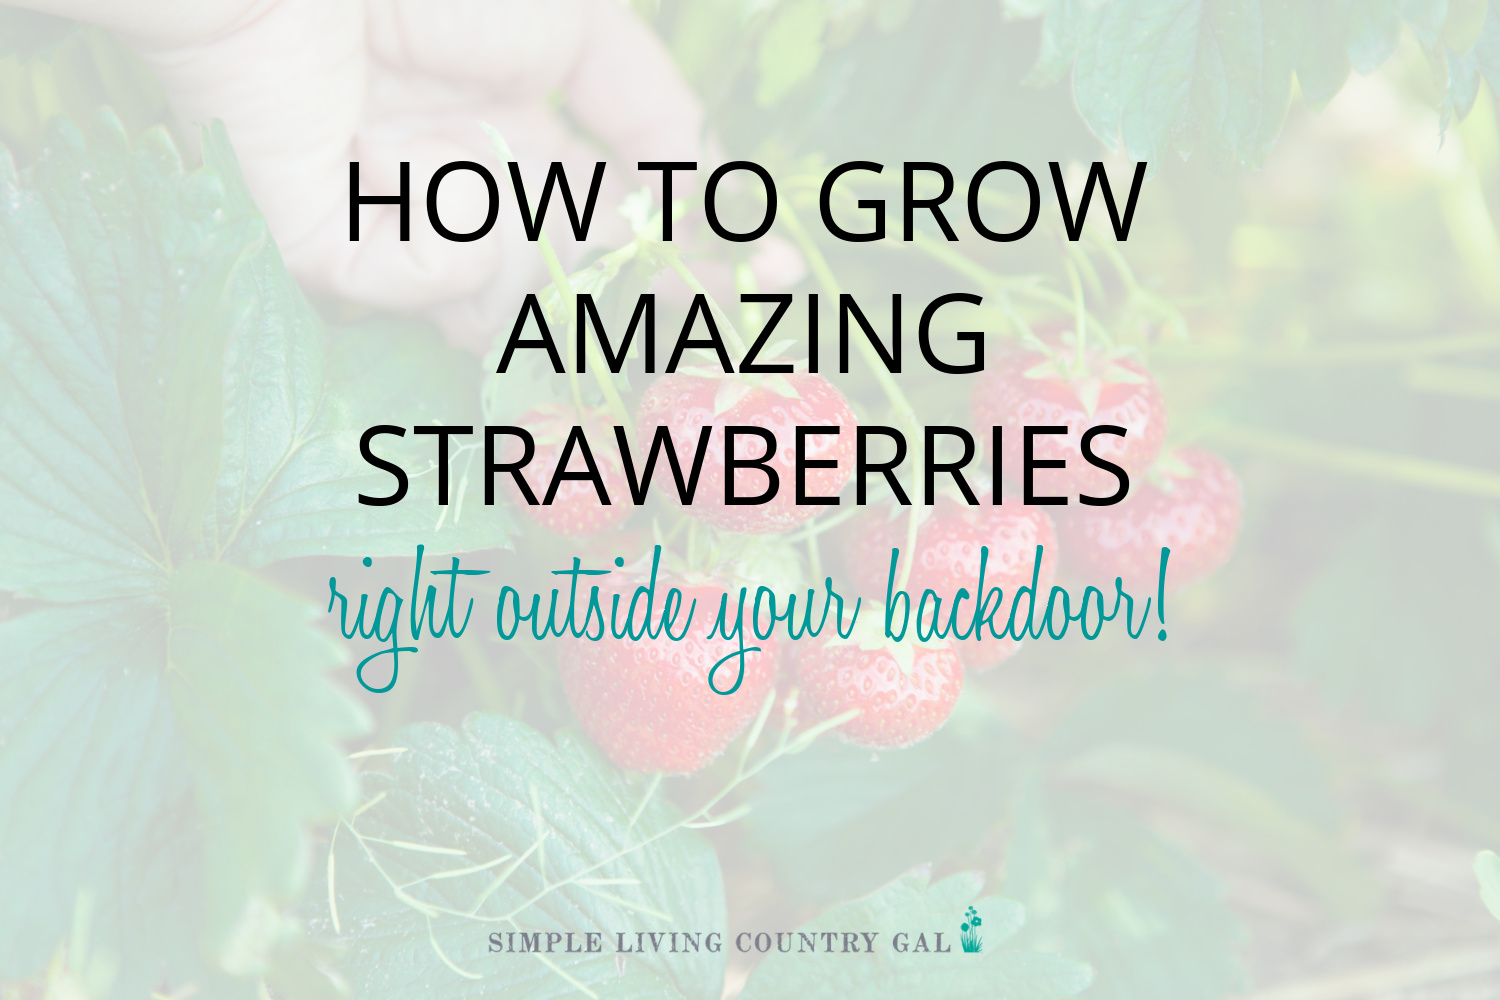 How to Grow Strawberries for Beginners